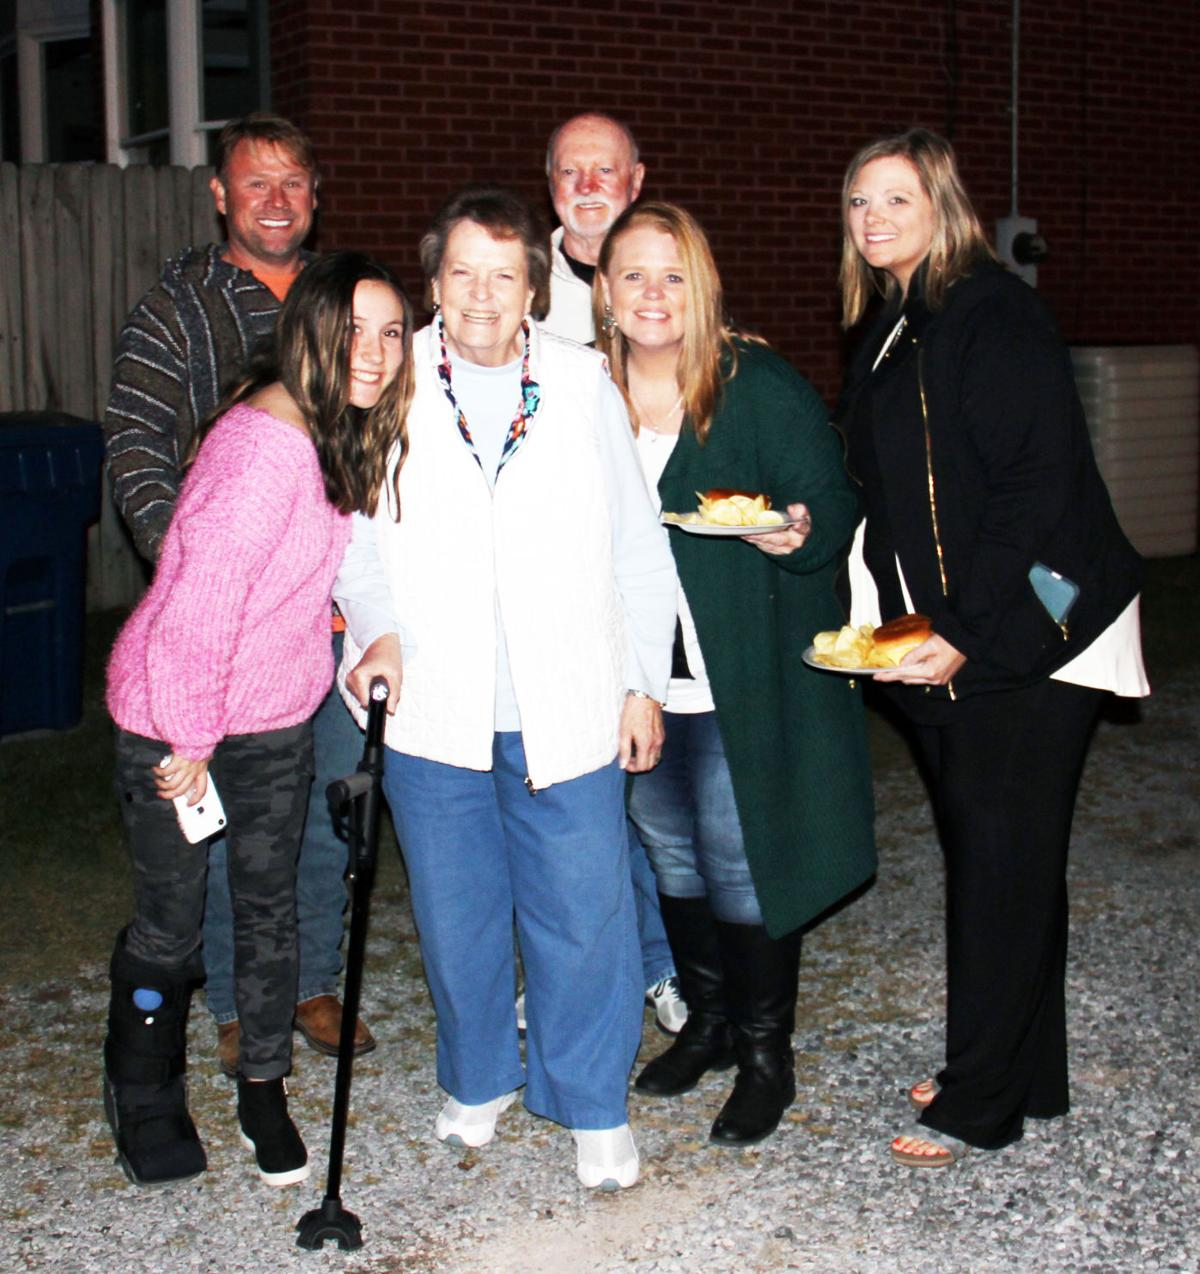 FSNA - Sherrie Hiett and family